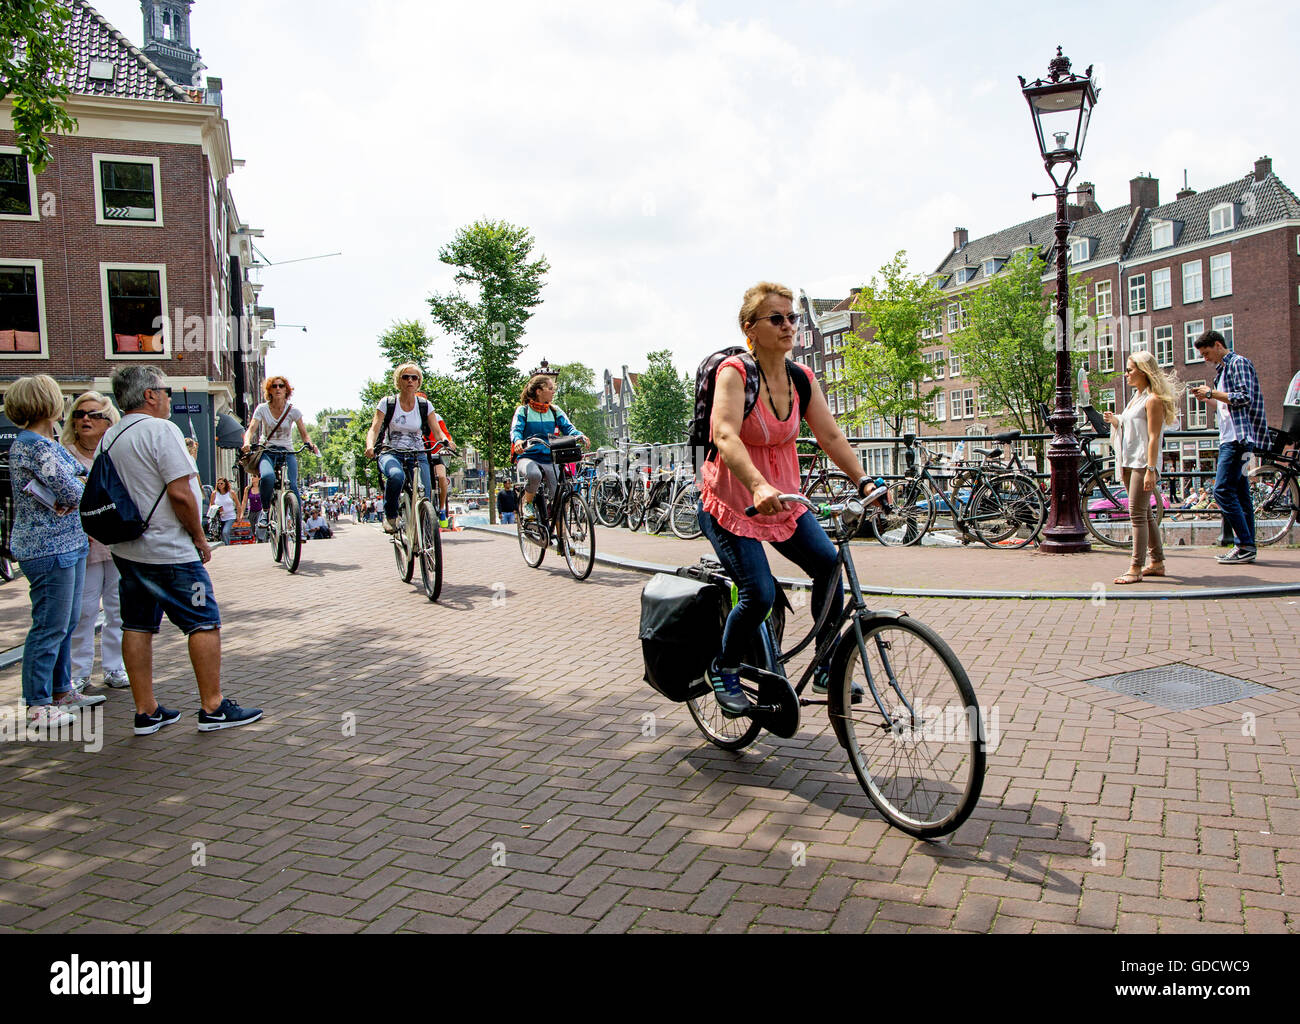 cycling amsterdam stockfotos cycling amsterdam bilder. Black Bedroom Furniture Sets. Home Design Ideas